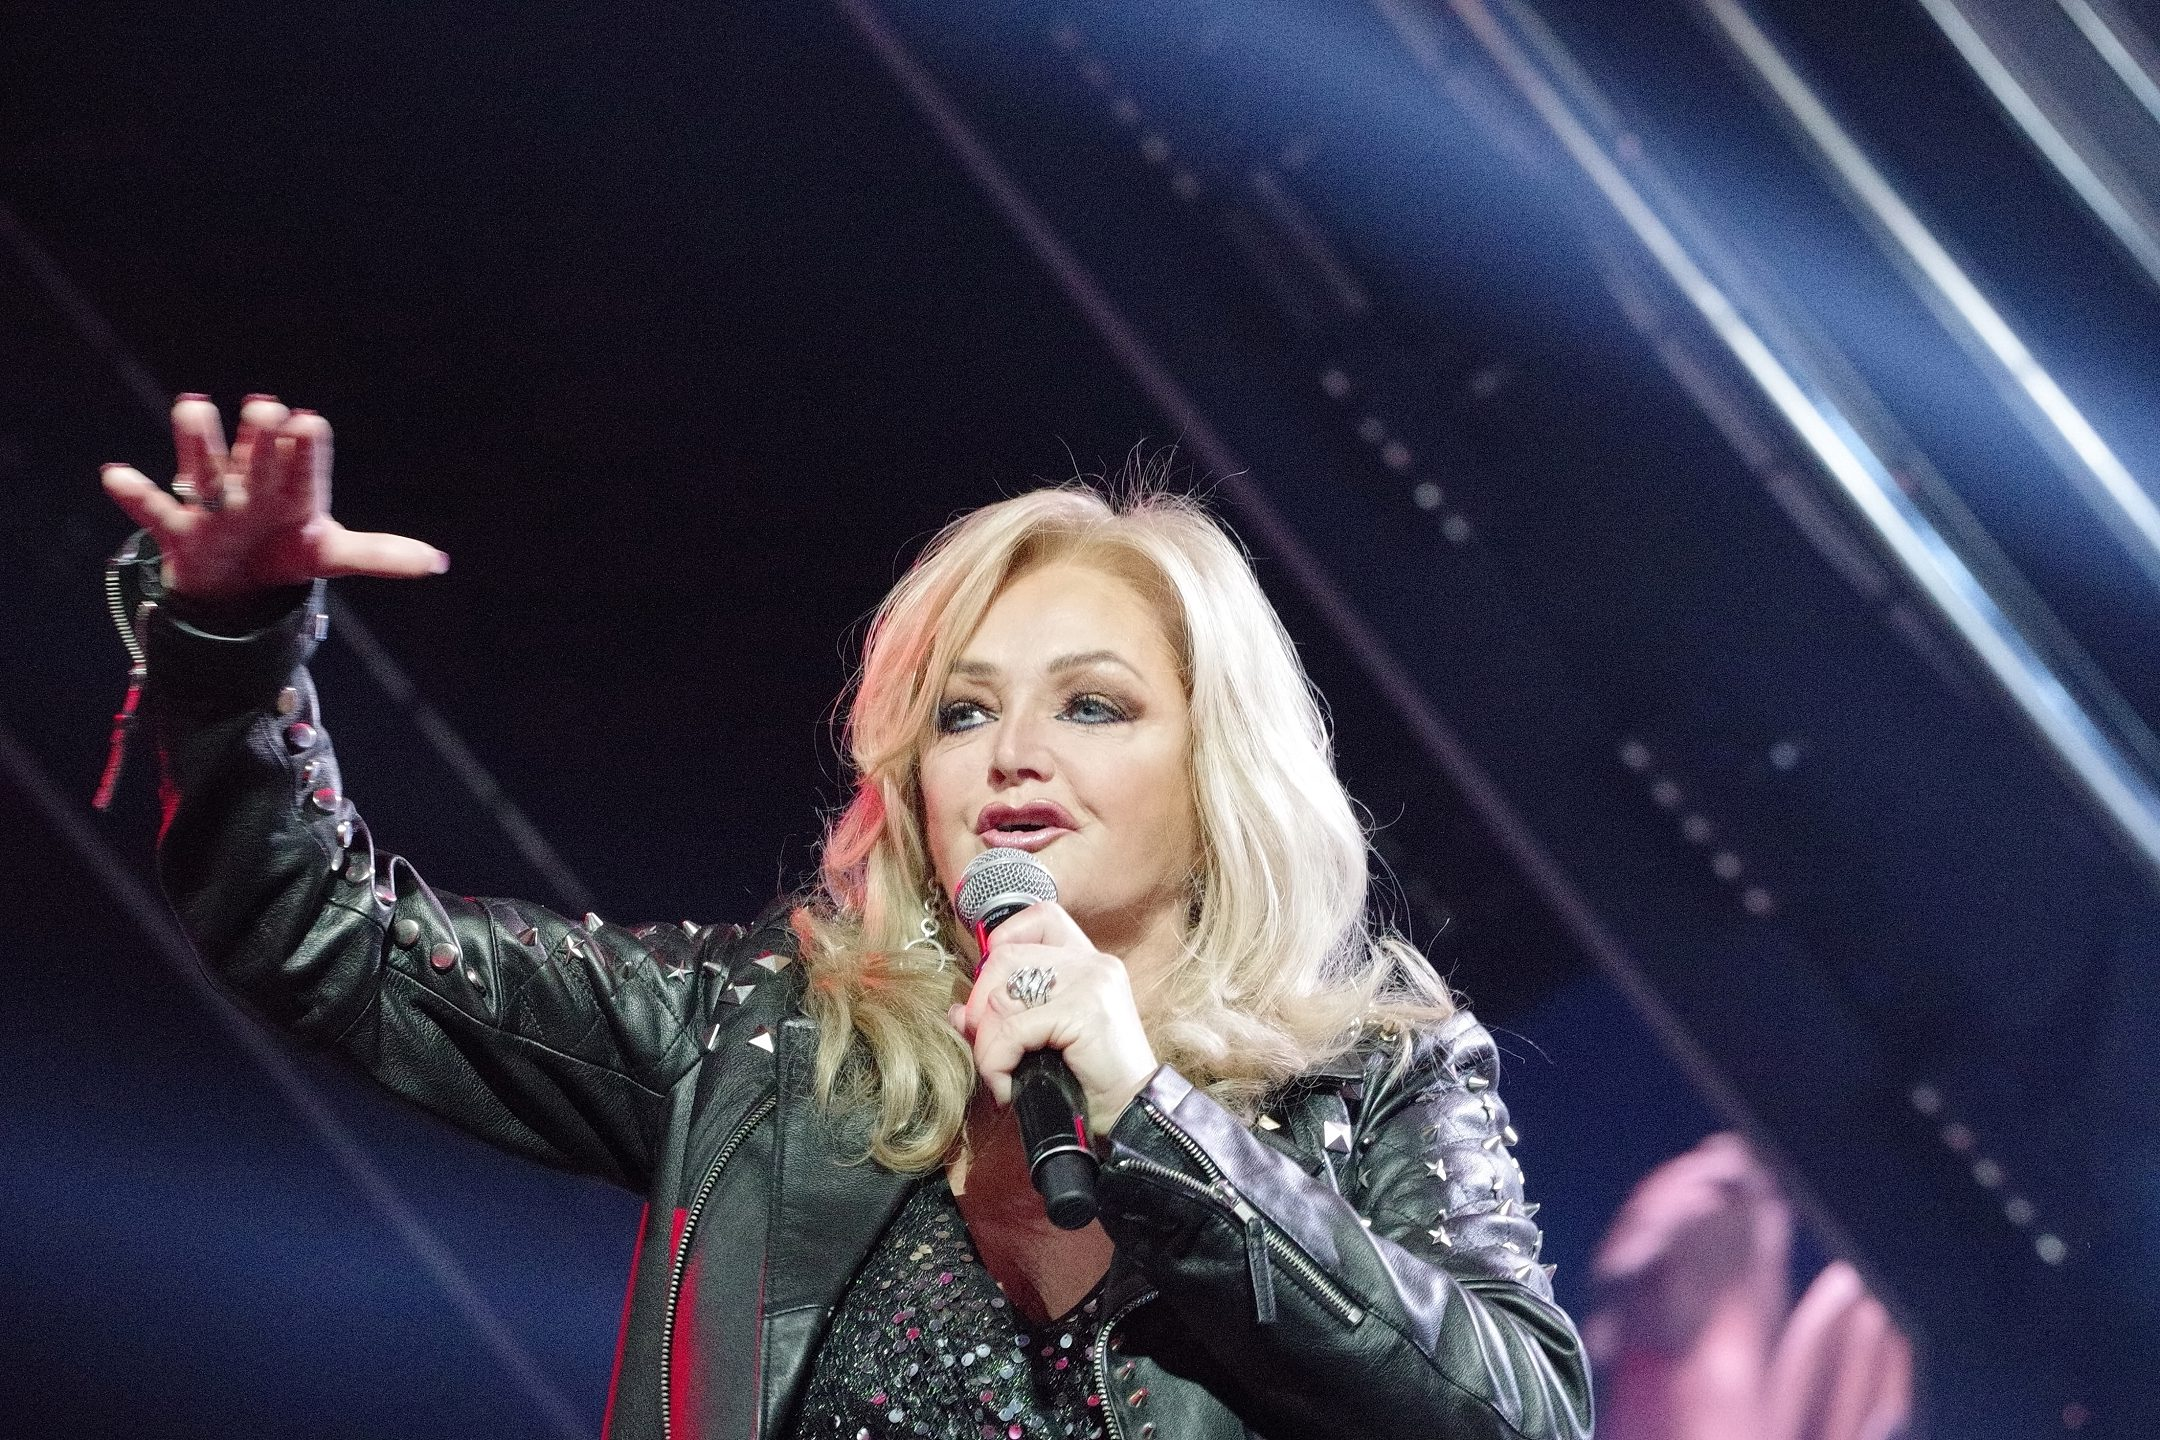 Bonnie Tyler – Total Eclipse of The Heart (2017)